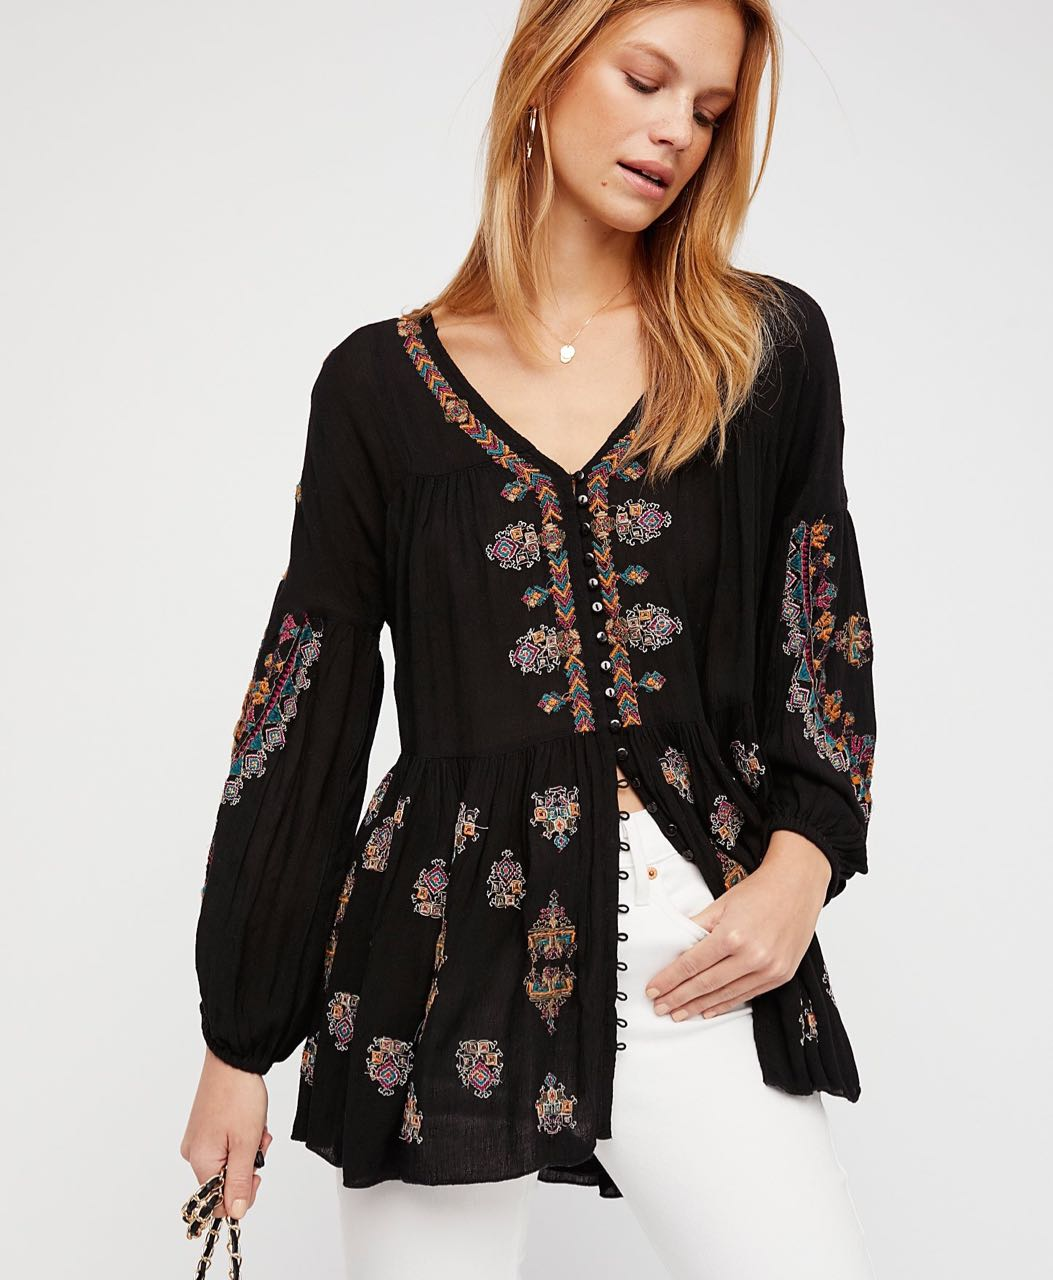 f82e636be94 Free People ARIANNA TUNIC (black) with Embroidery